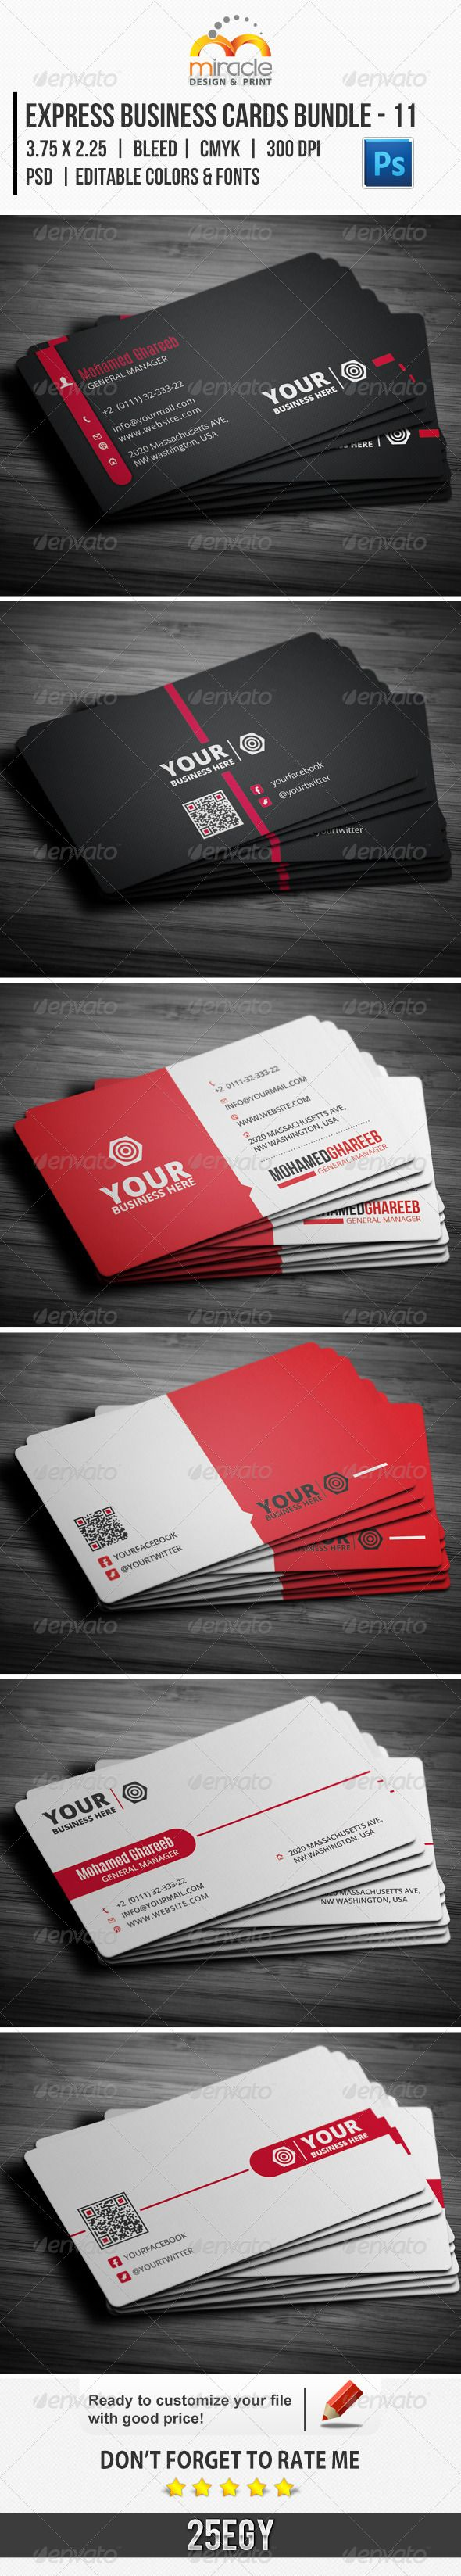 Business card express unlimitedgamers express business cards bundle 11 creative 11 and business cards colourmoves